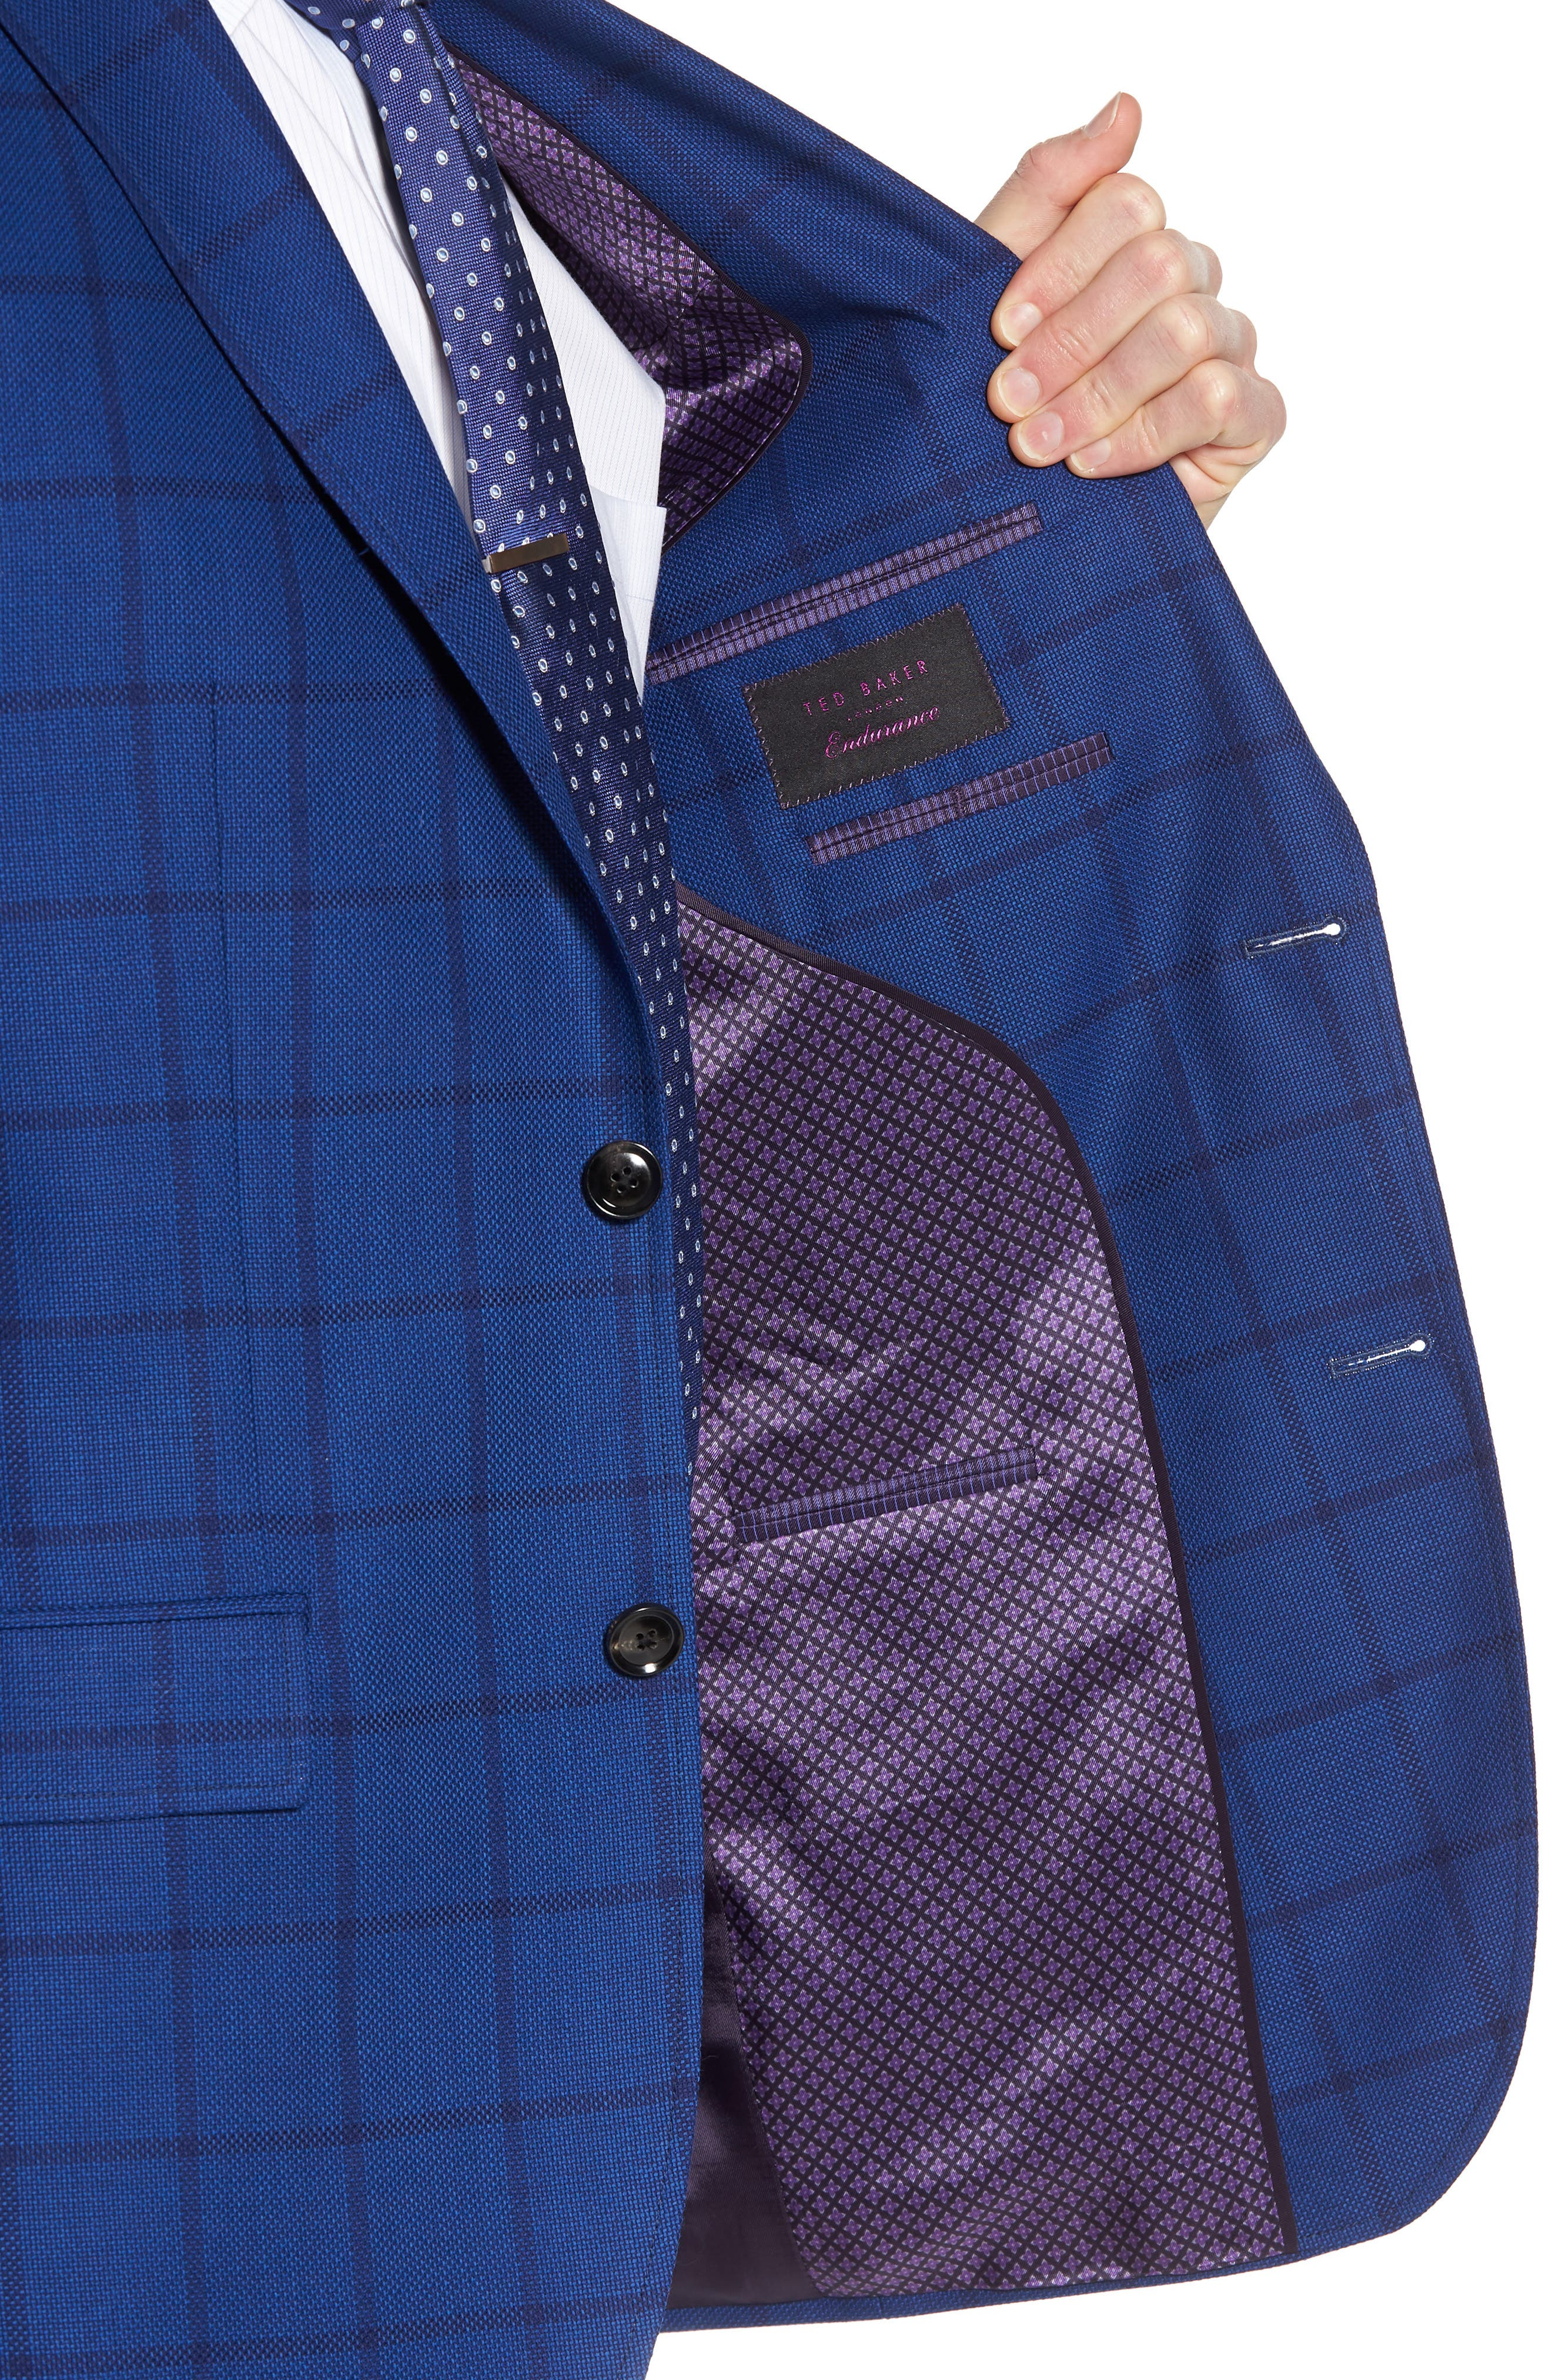 Jay Trim Fit Windowpane Wool Sport Coat,                             Alternate thumbnail 4, color,                             Blue